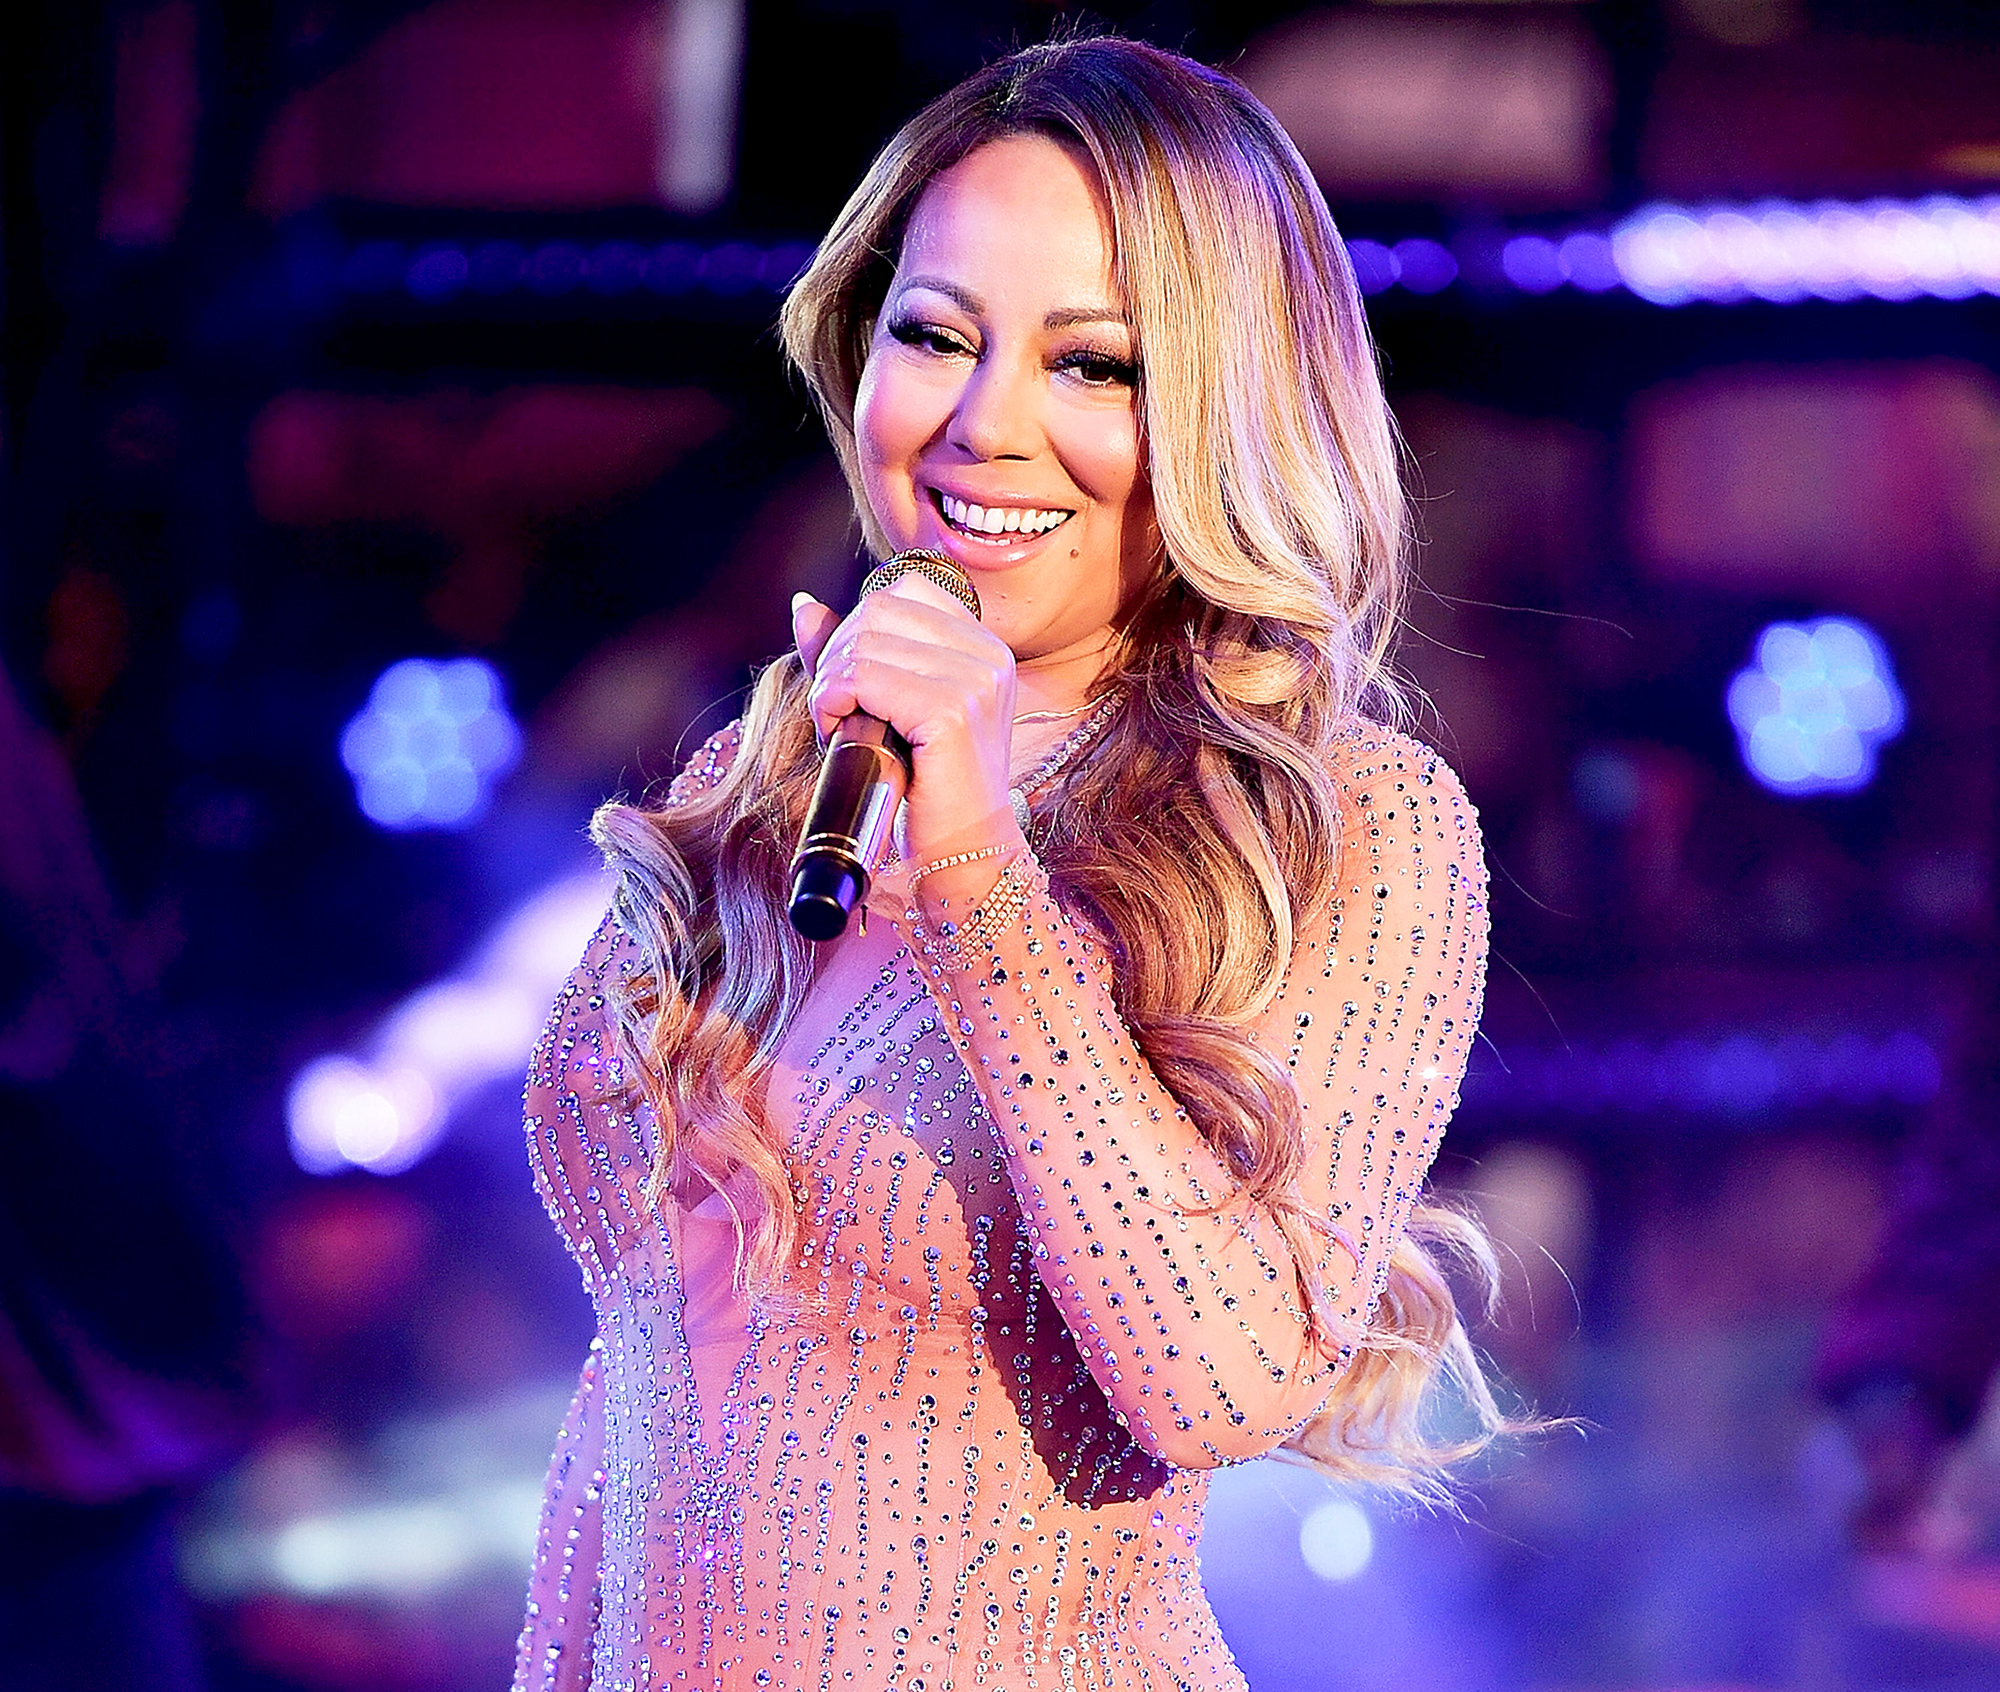 Mariah Carey to Perform Again on 'Dick Clark's New Year's Rockin' Eve'